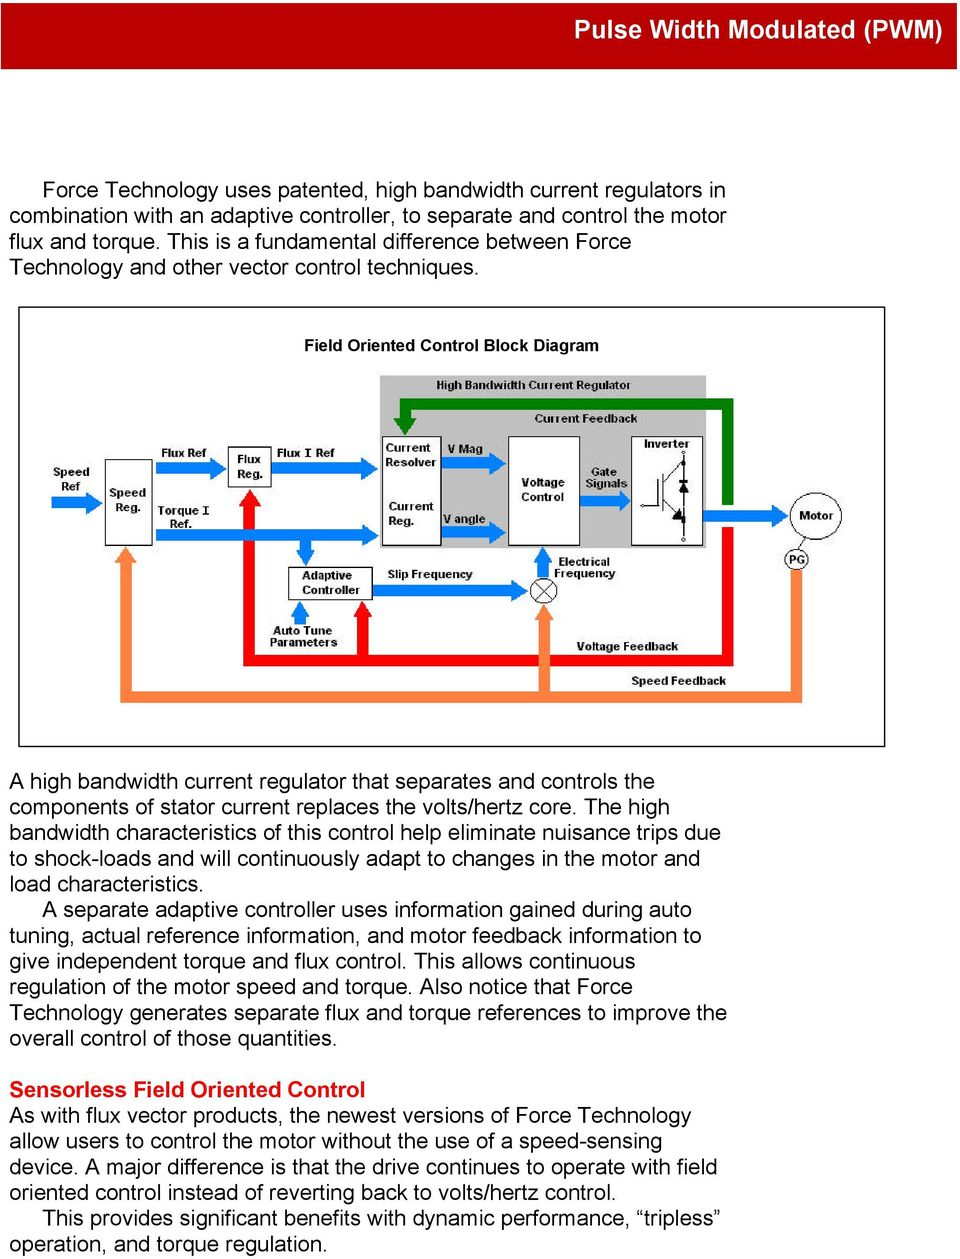 Field Oriented Control Block Diagram A high bandwidth current regulator that separates and controls the components of stator current replaces the volts/hertz core.